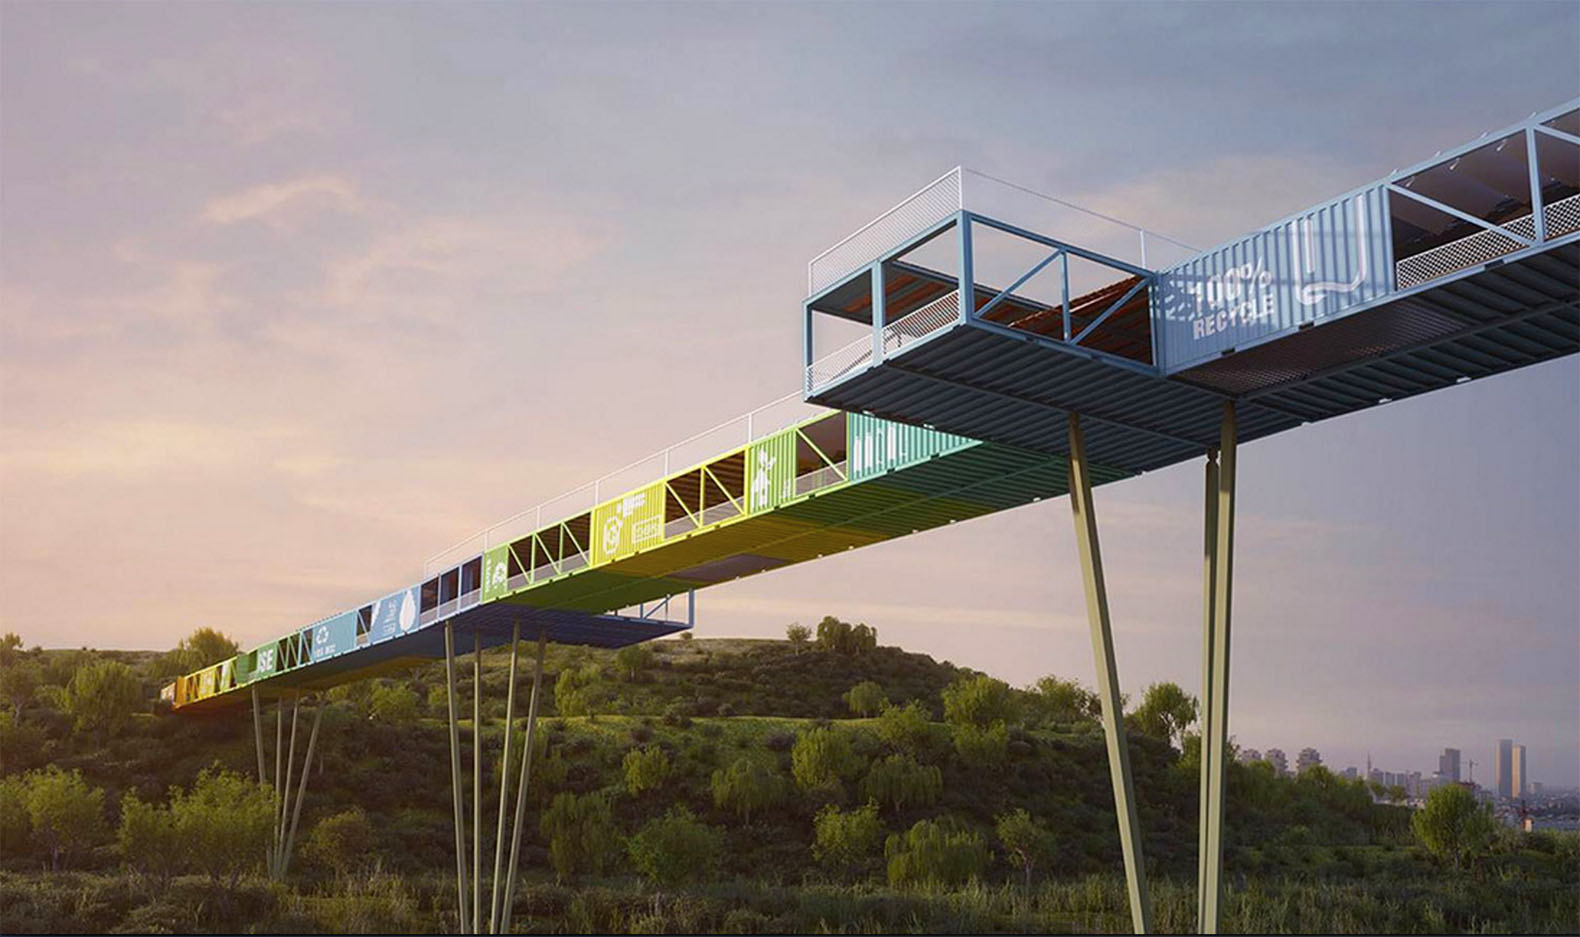 Shipping container architecture research - Econtainer Recycled Shipping Container Bridge Provides Gateway To Tel Aviv S Ariel Sharon National Park